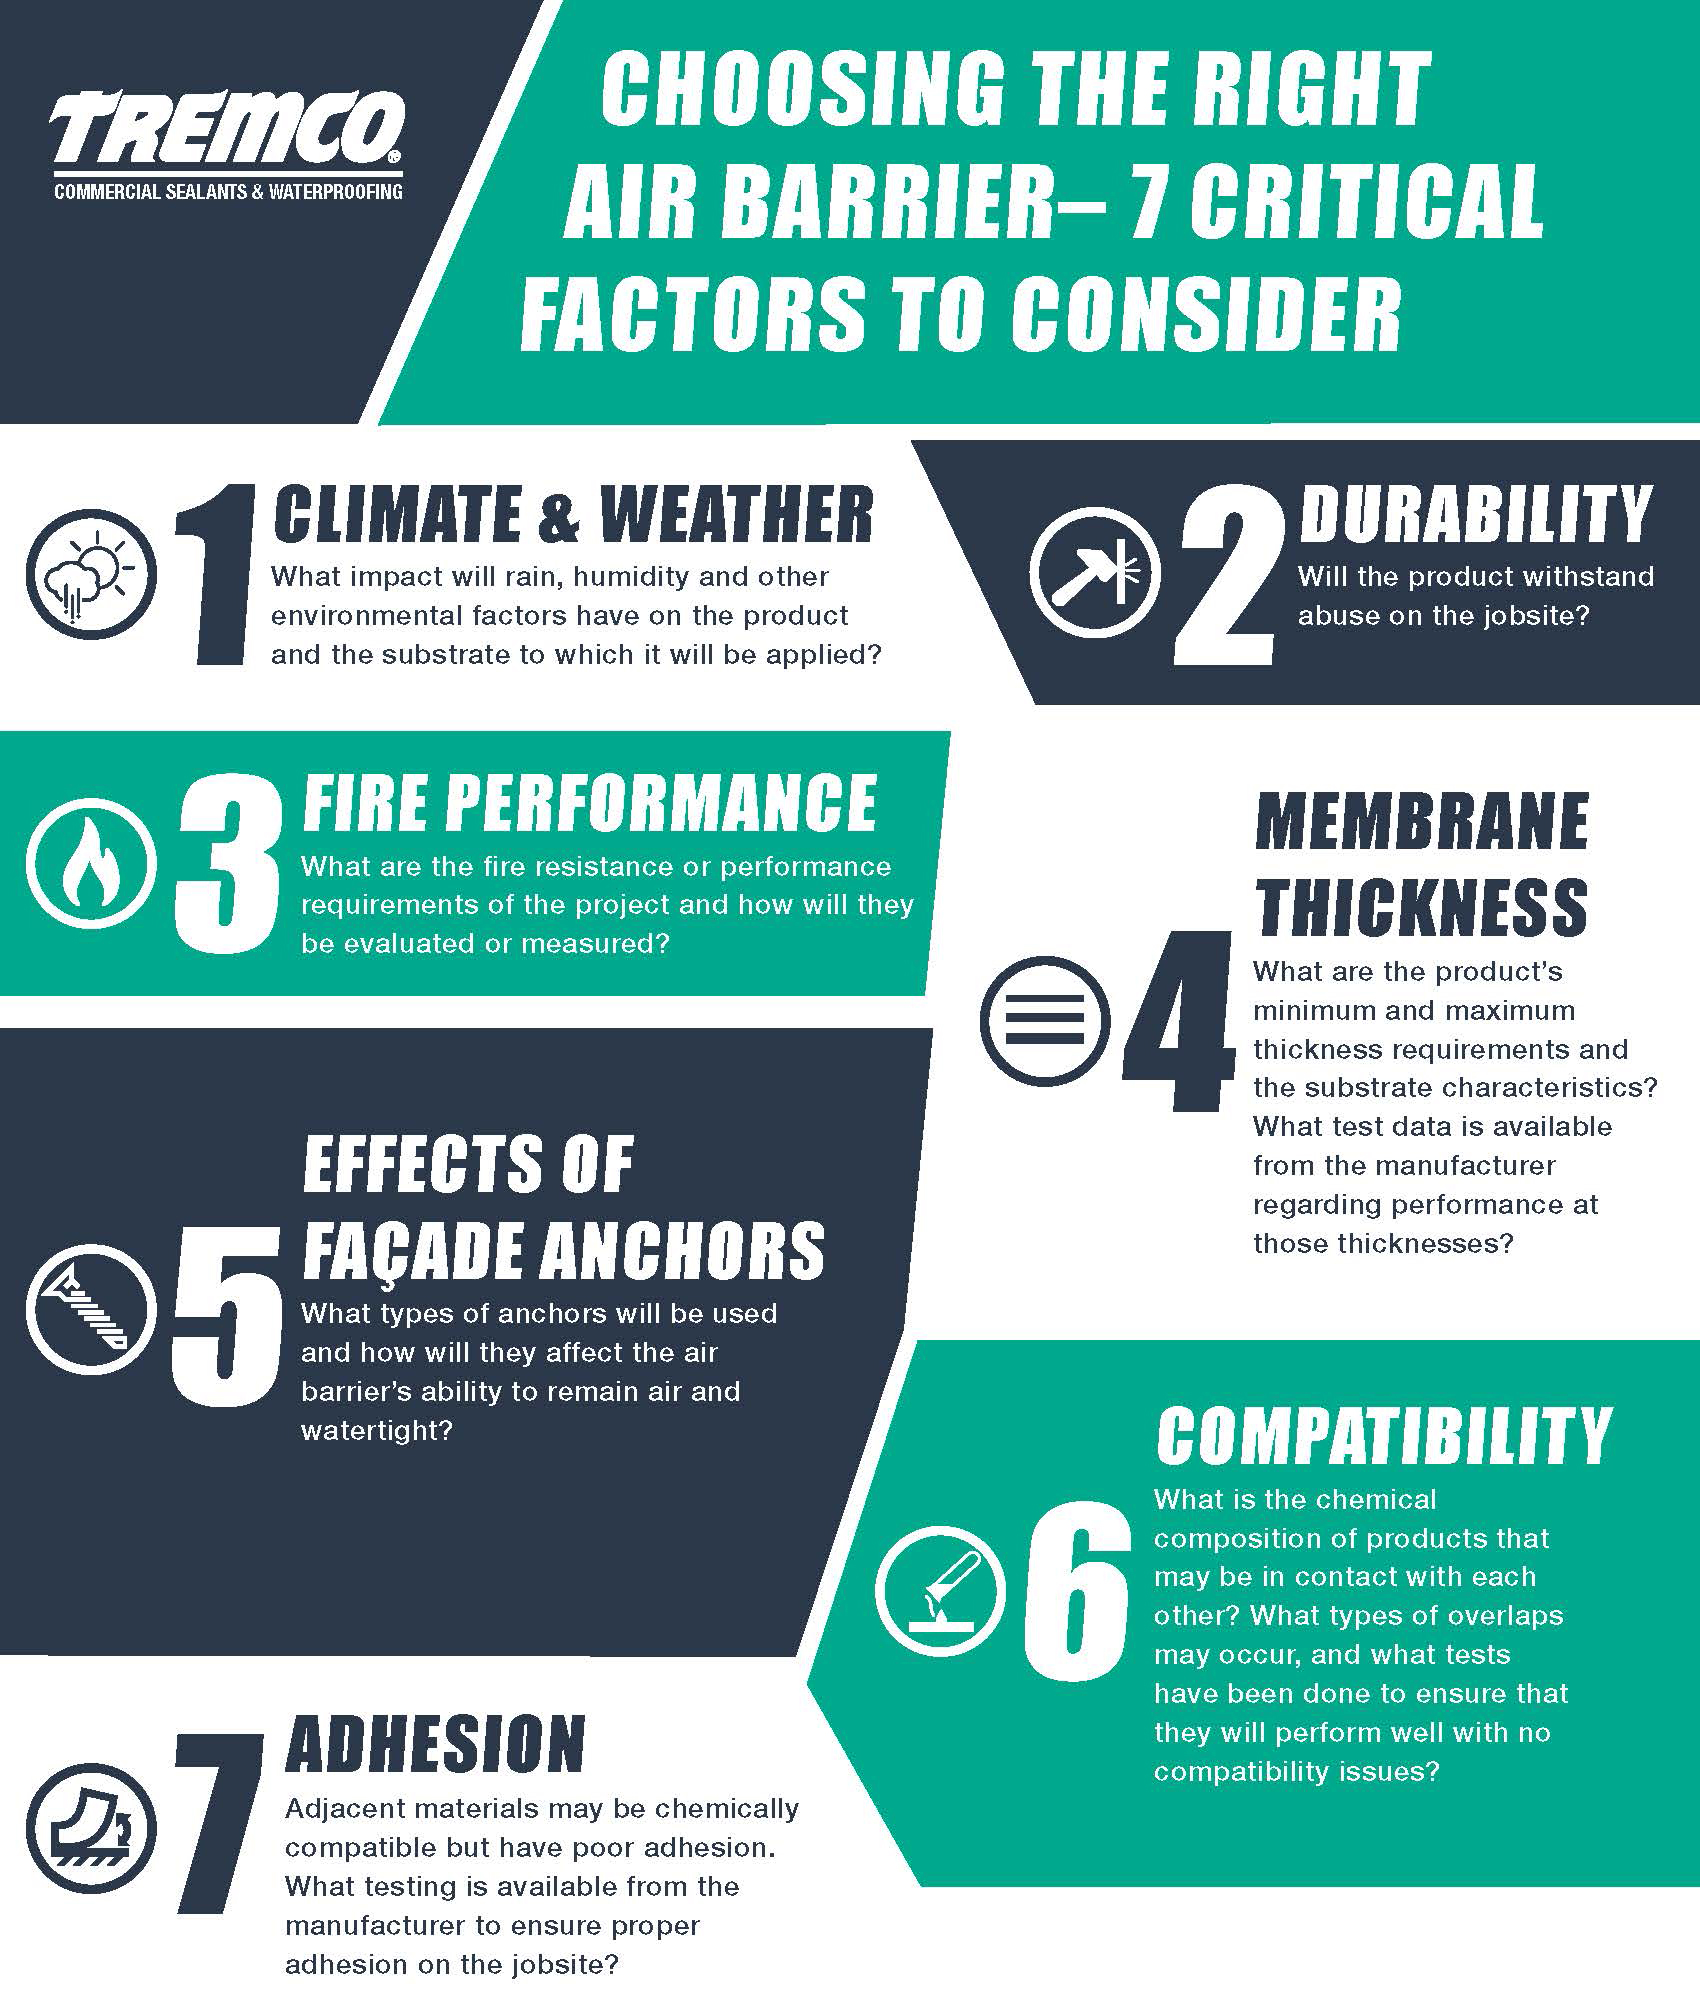 CSW_infographic_AirBarrier